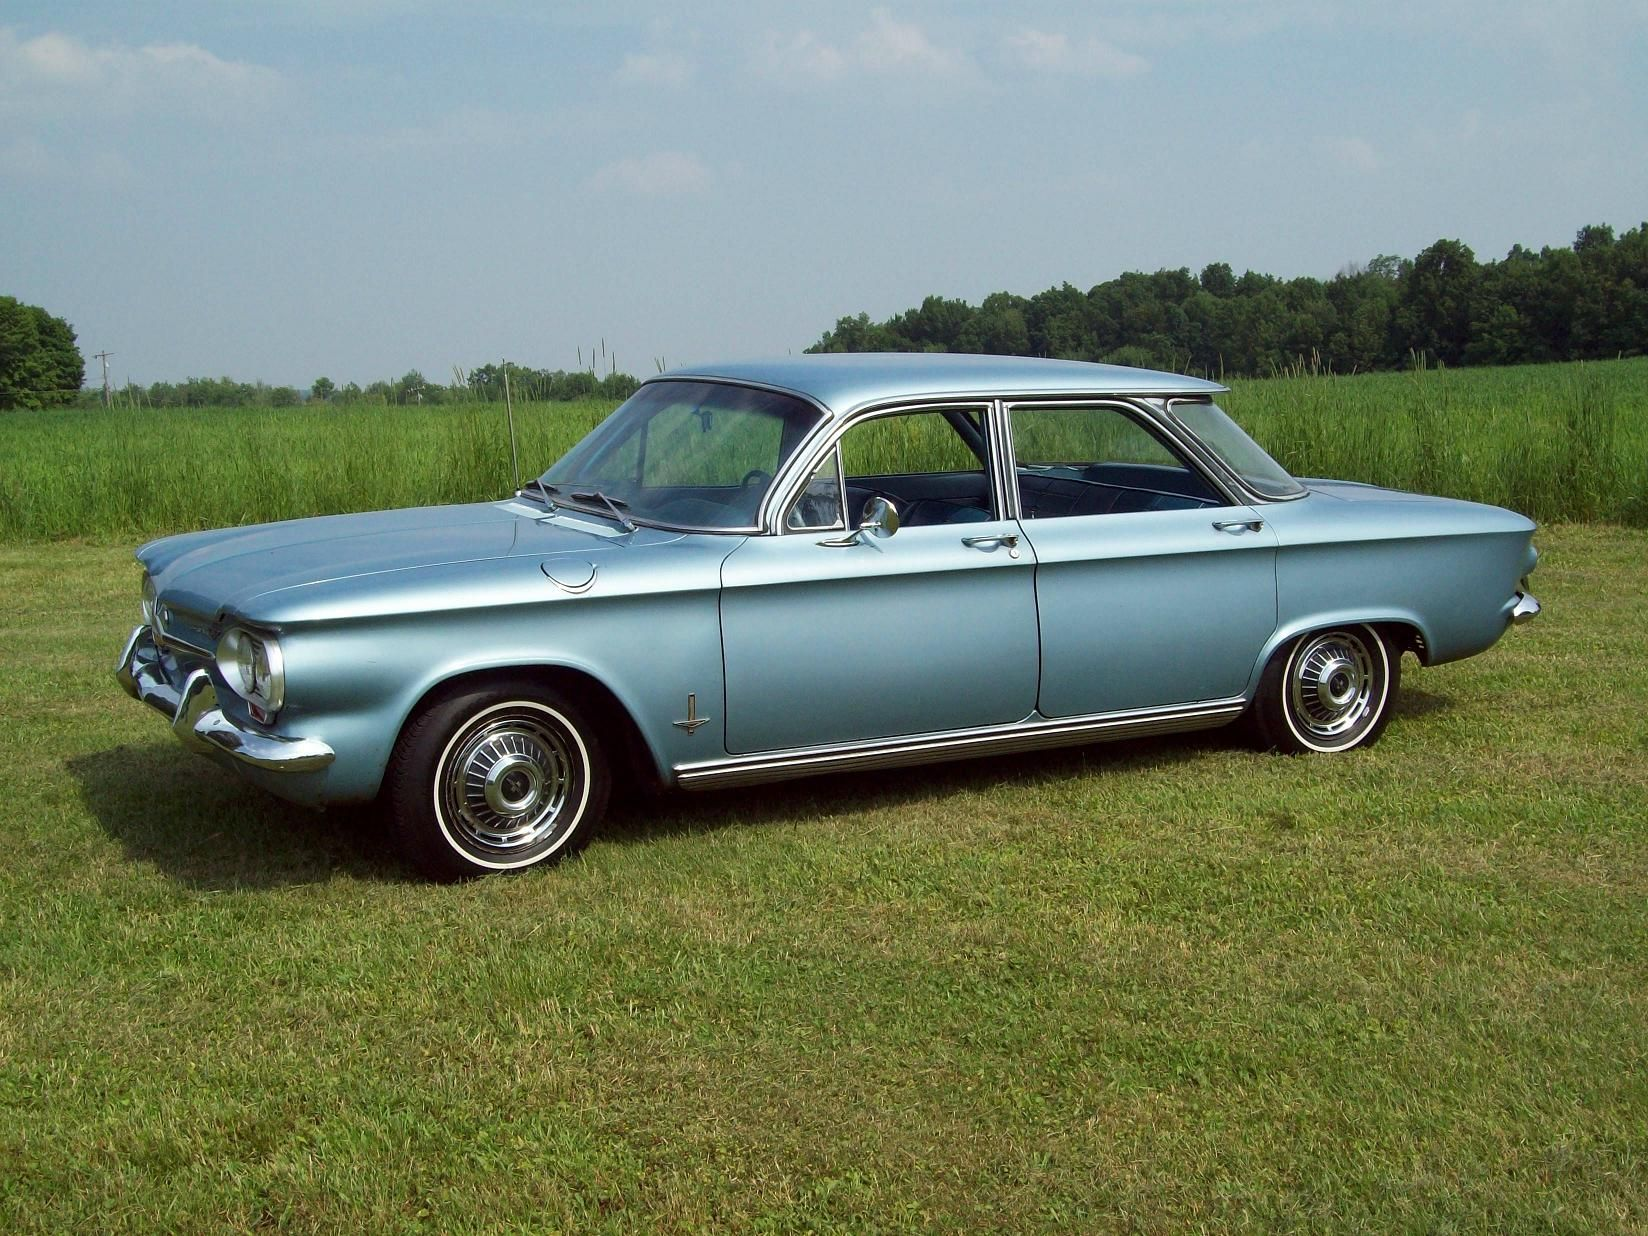 Corvair 1963 Monza Four Door Sedan  The Car I Learned To